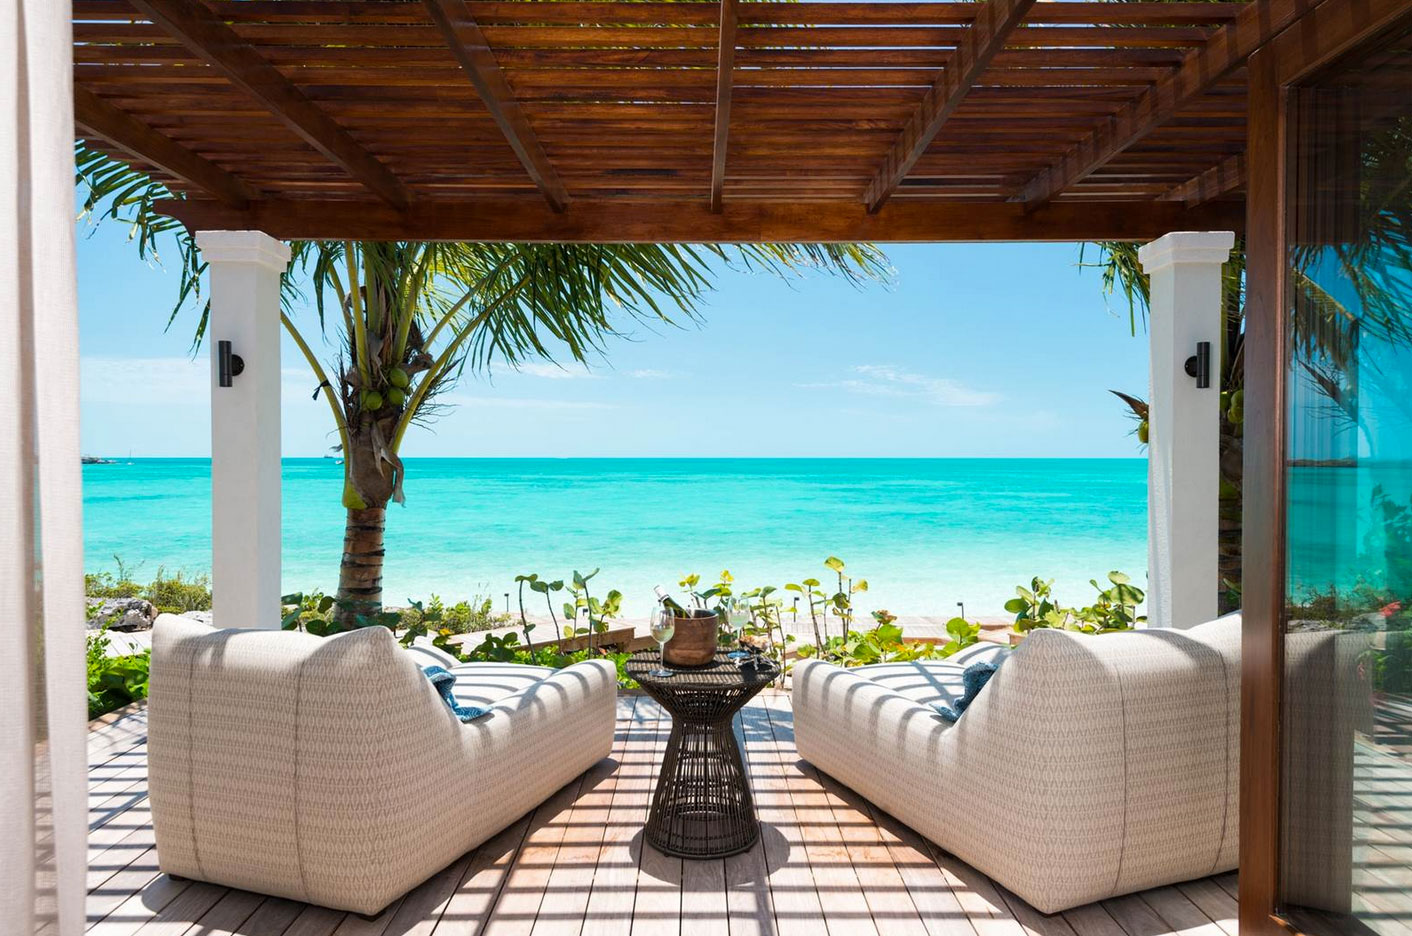 Island Life Never Looked So Tempting Thanks To This Turks and Caicos Dreamhome